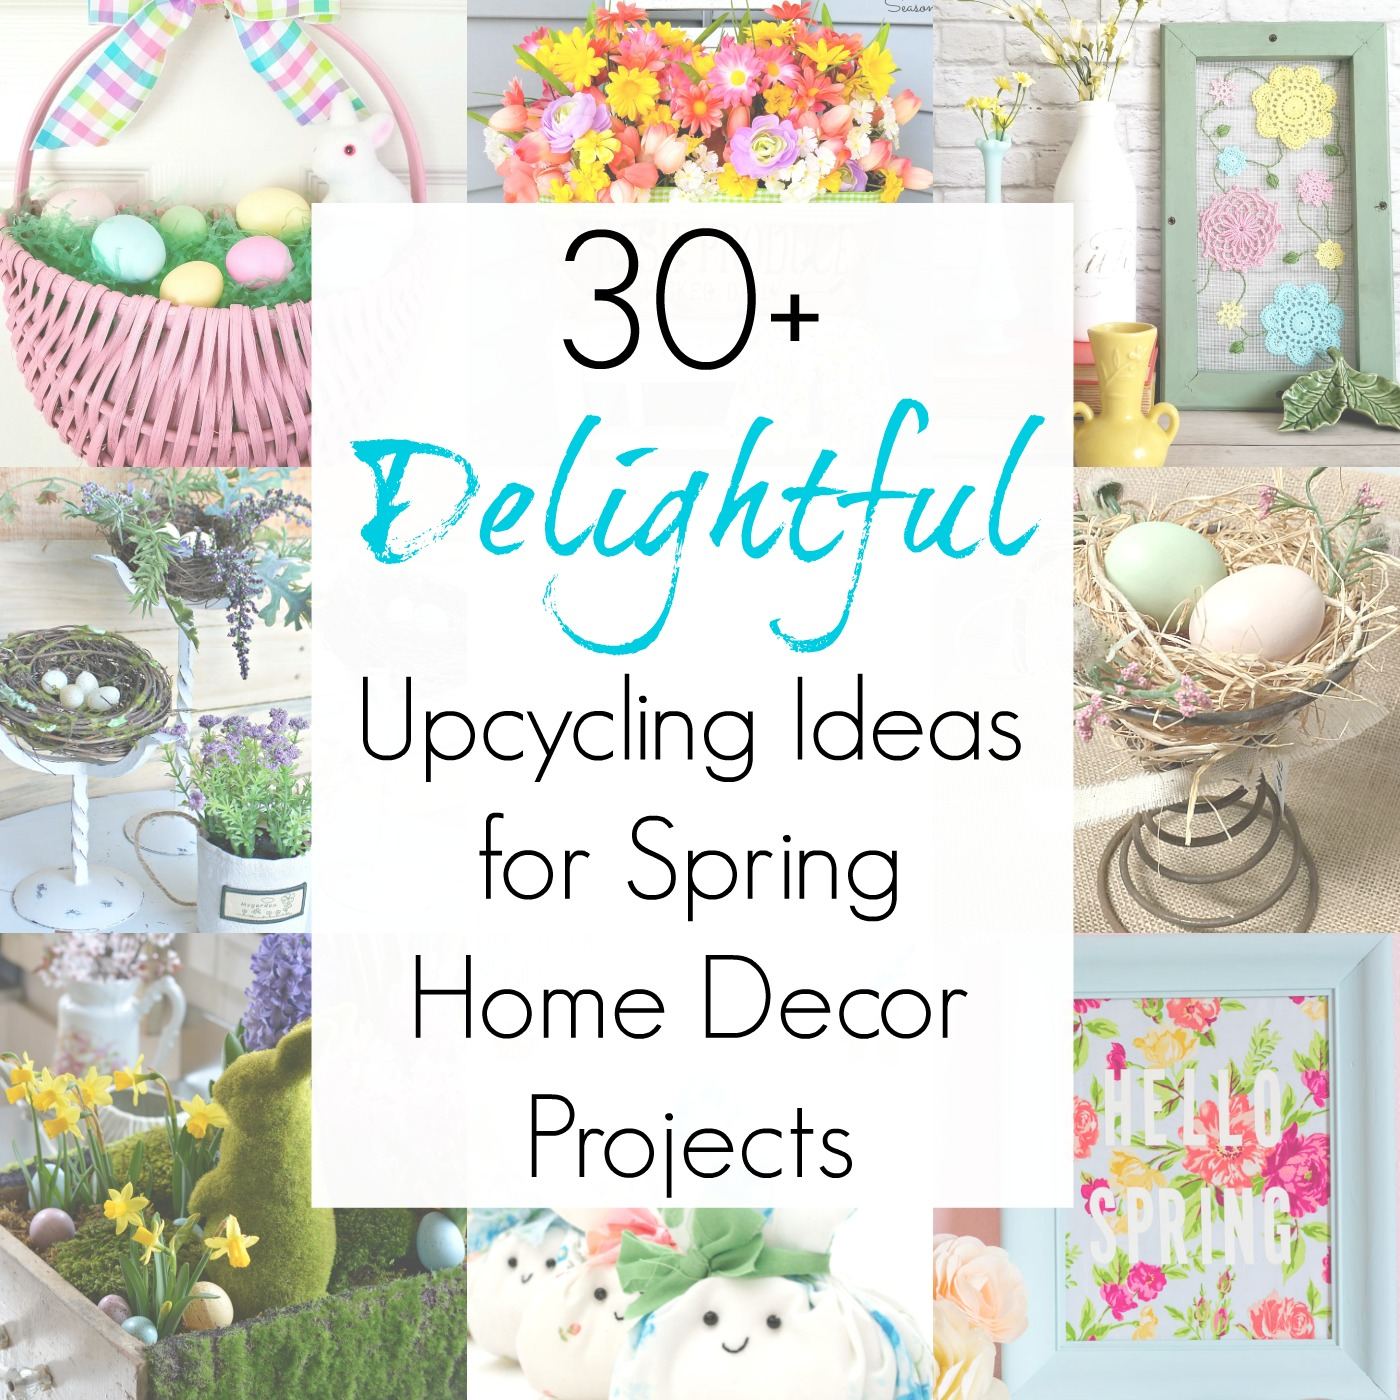 Upcycling Ideas and Repurposing Projects for Spring home decor, Spring crafts, and Easter decorations compiled by Sadie Seasongoods / www.sadieseasongoods.com